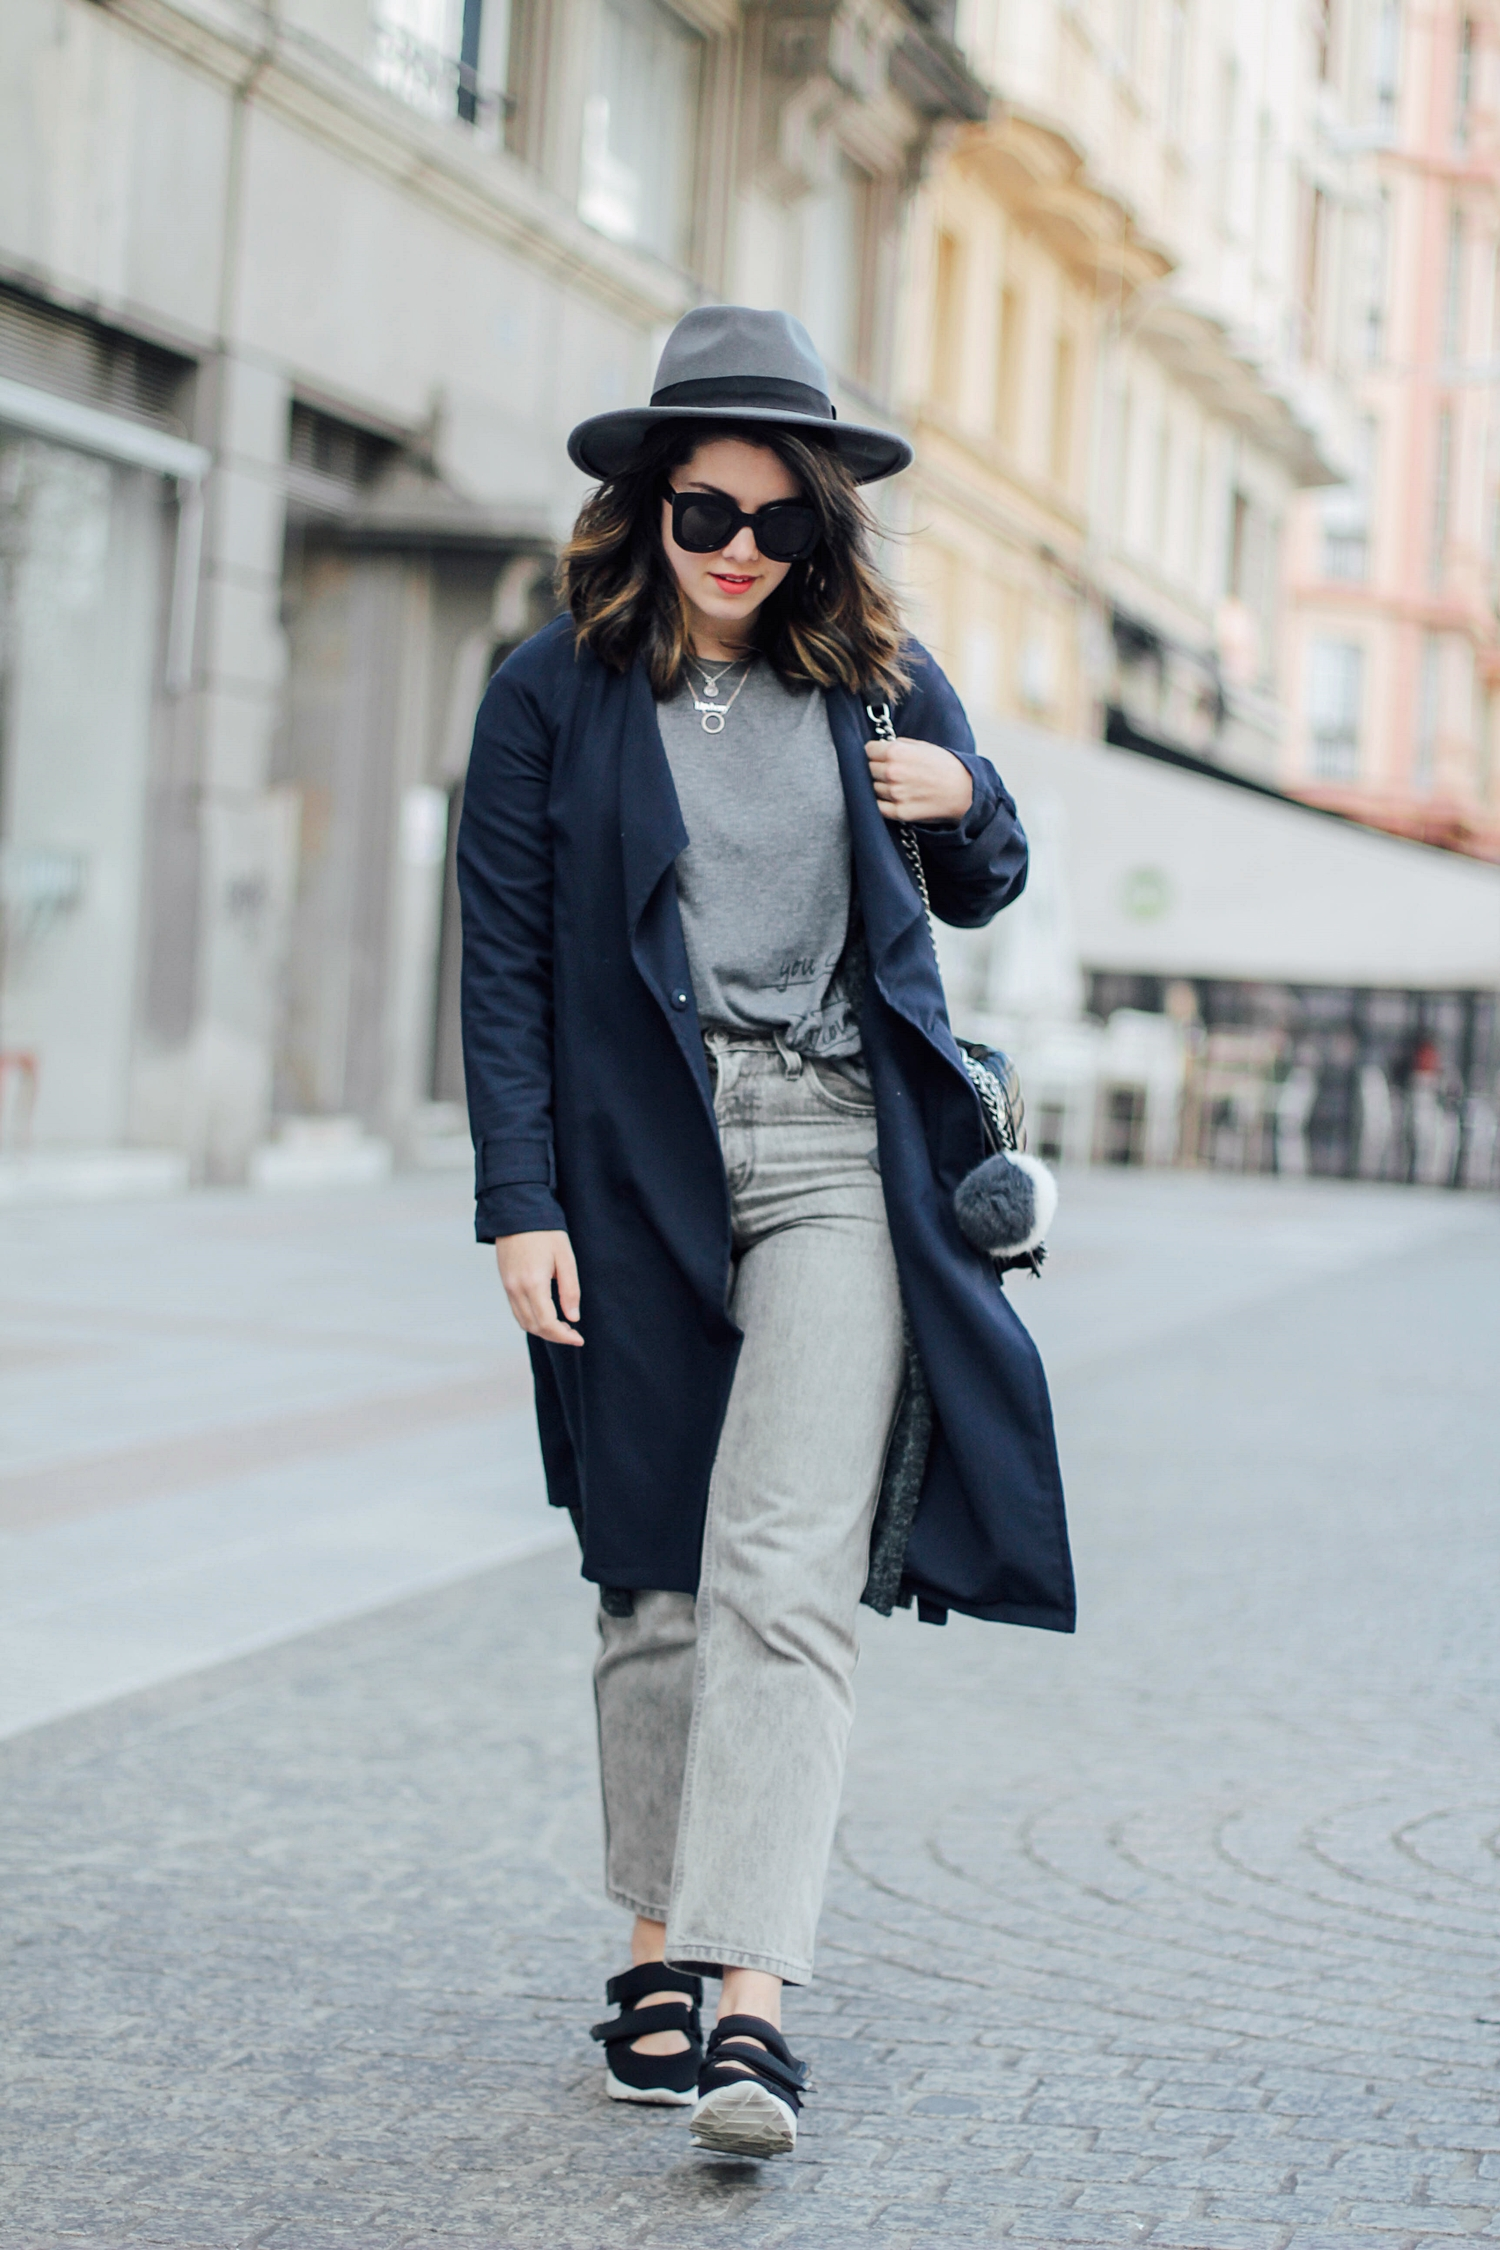 flatform velcro sneakers uterque balmain inspiration long trench myblueberrynightsblog streetstyle